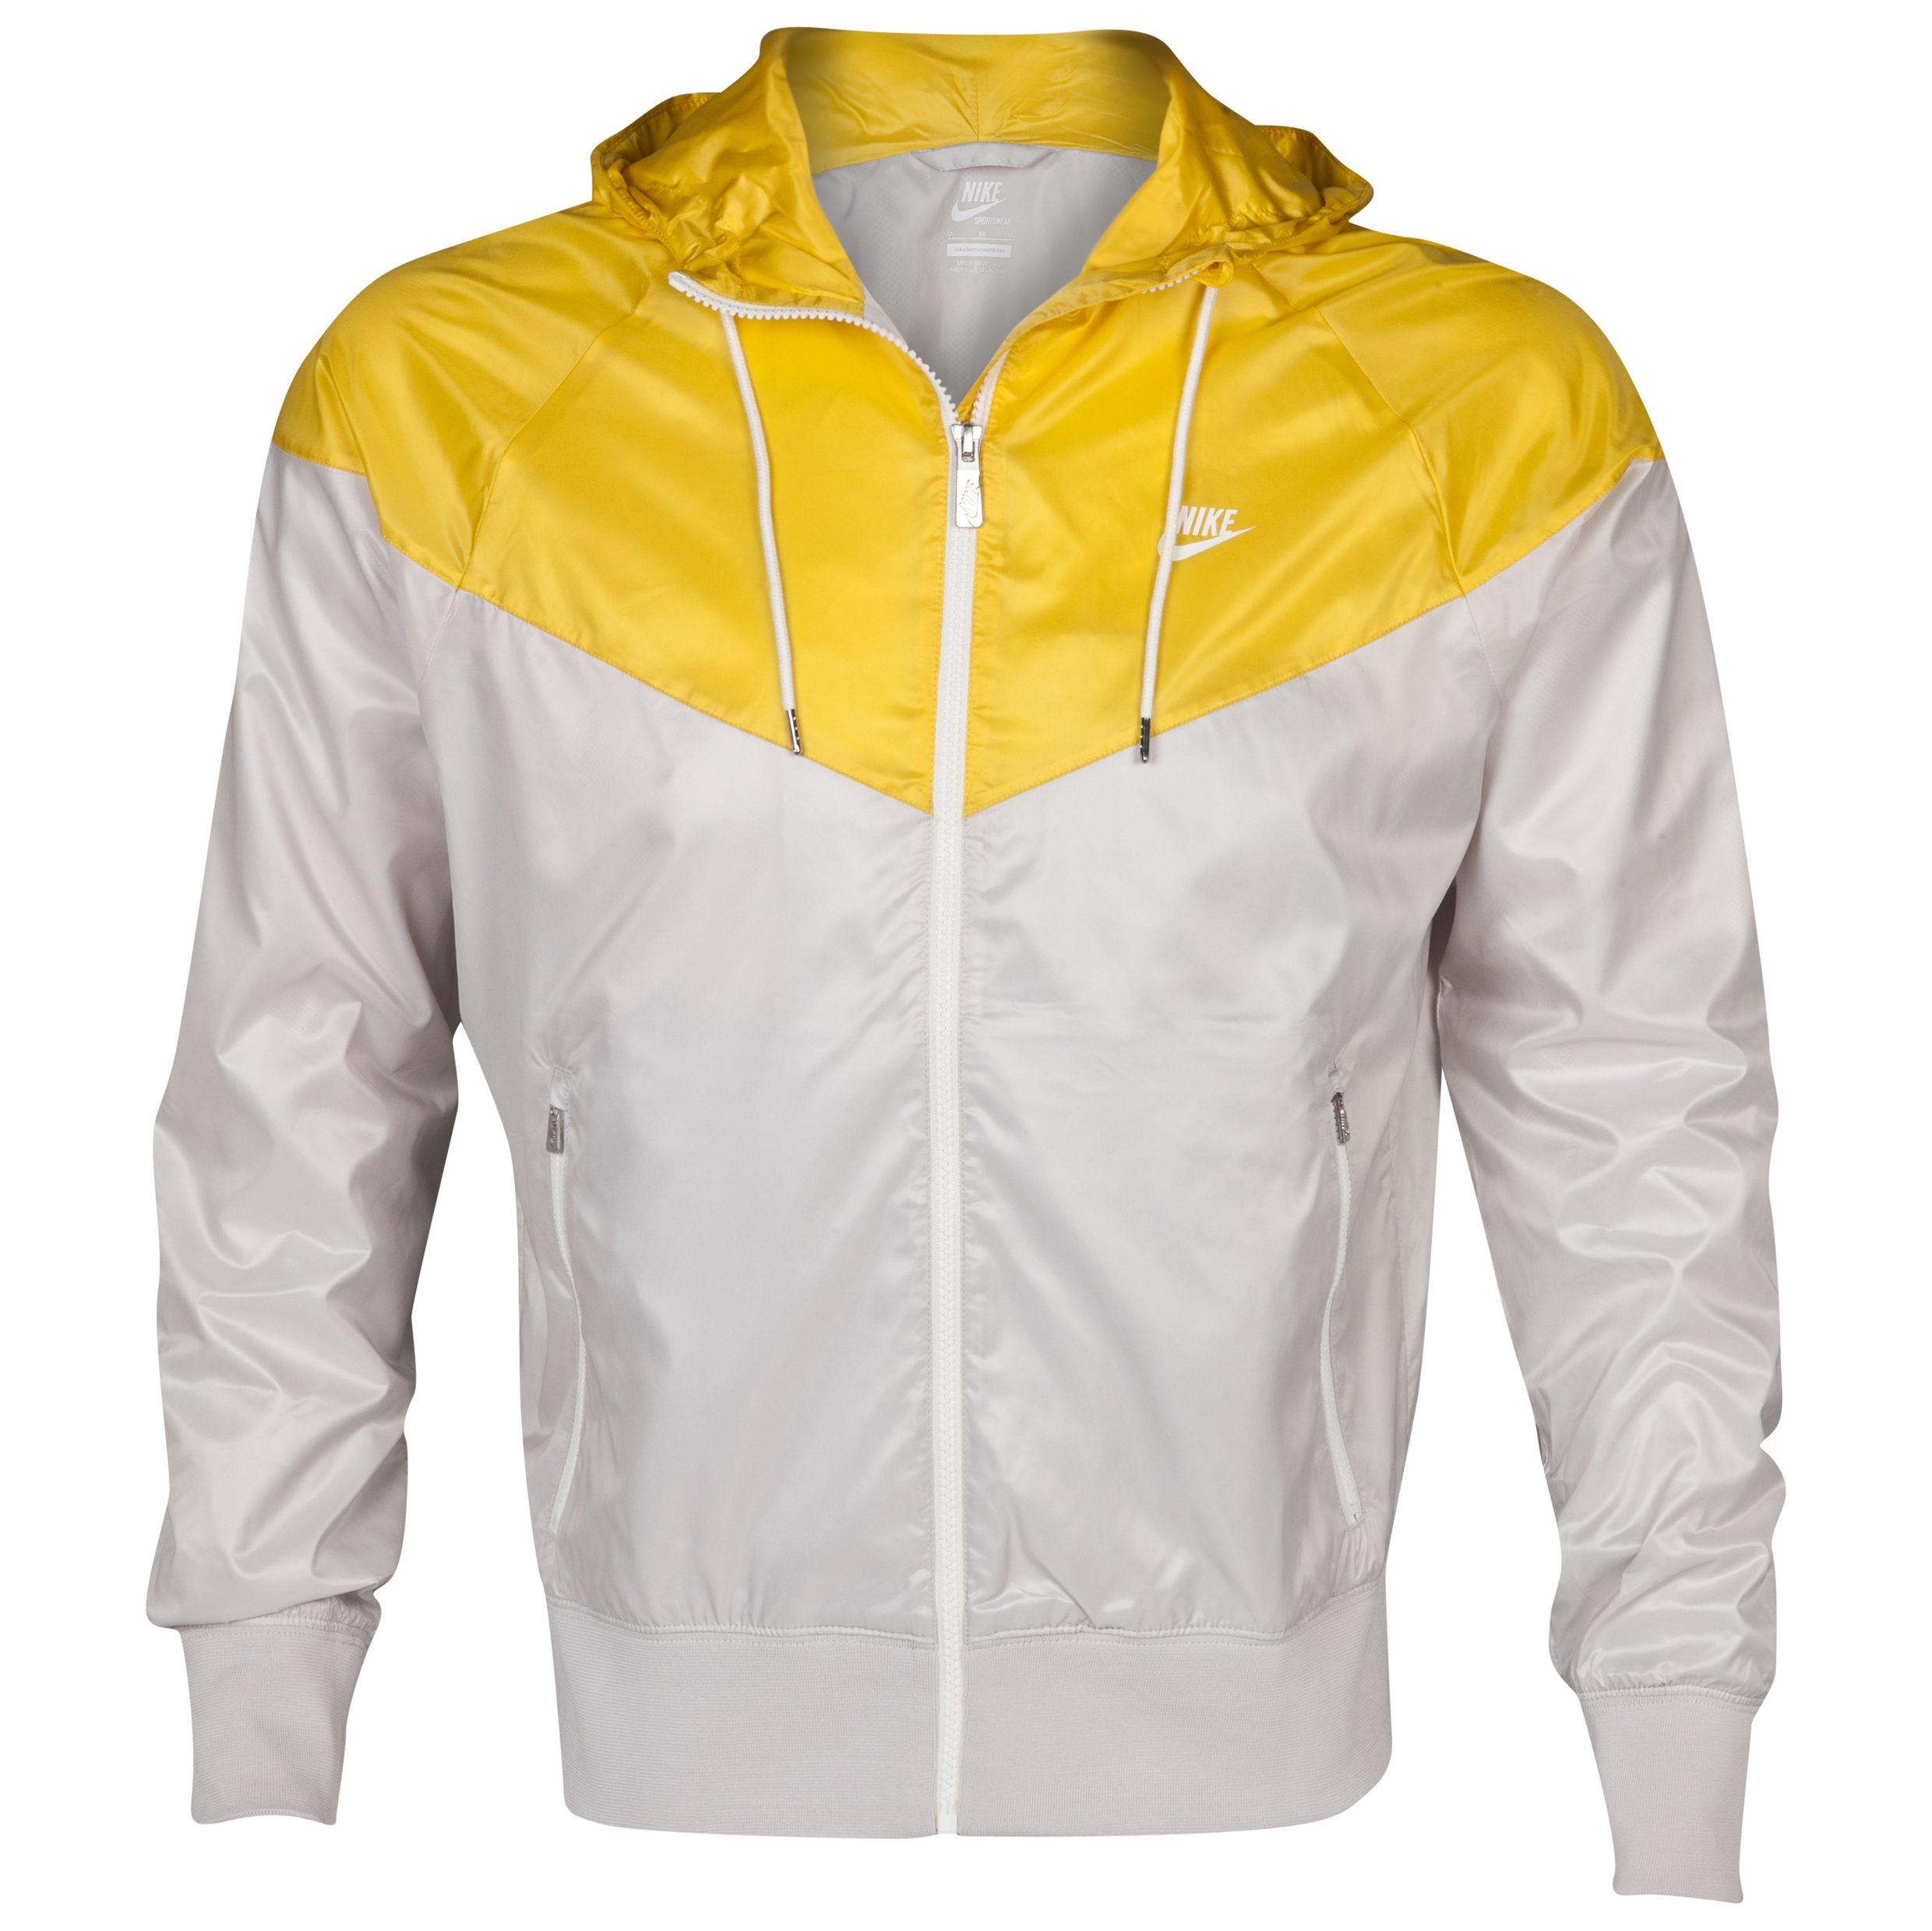 Nike Windrunner Jacket - Light Bone/Vivid Sulphur Yellow